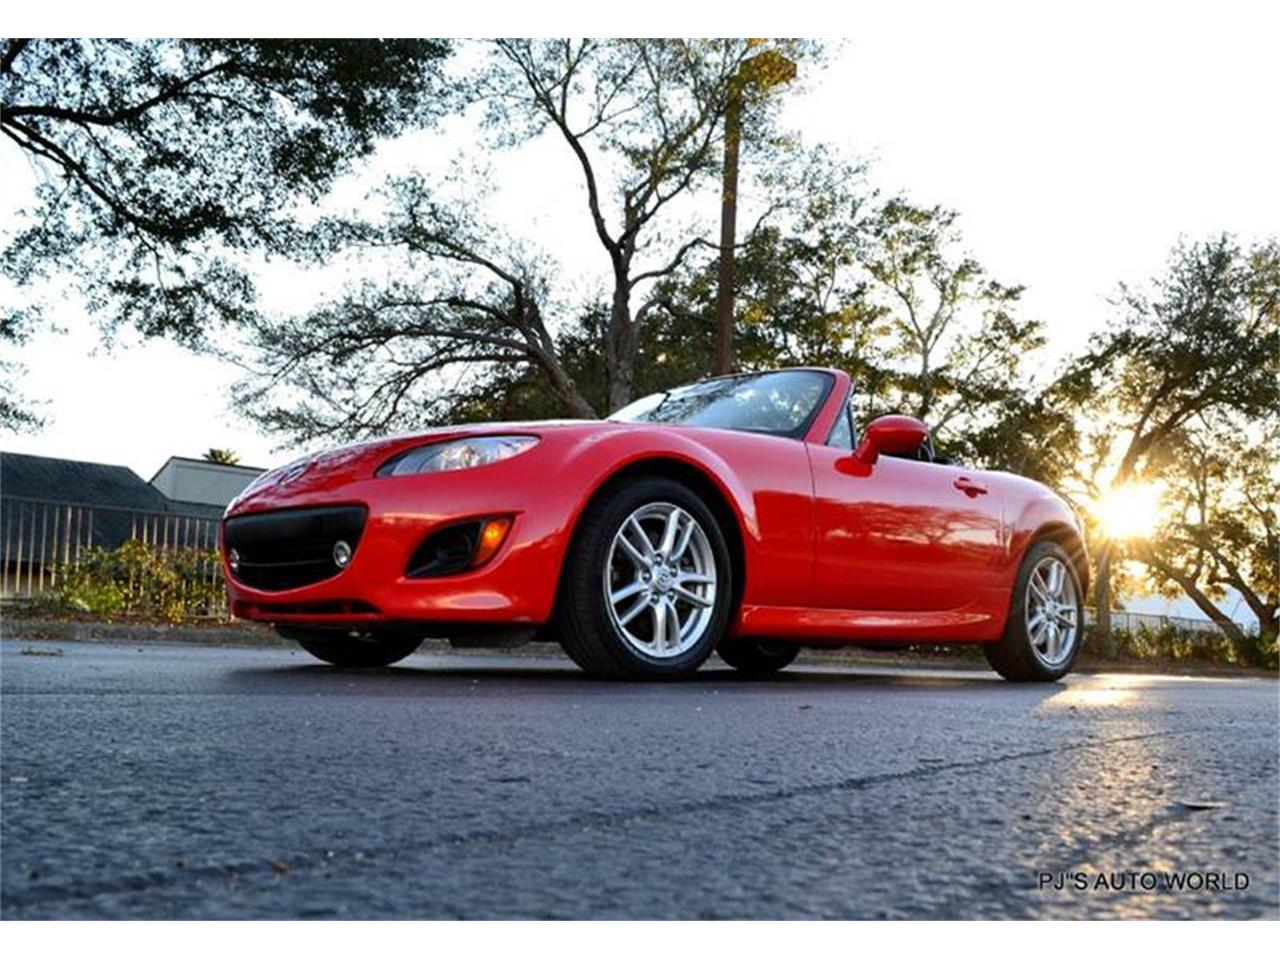 Large Picture of 2011 Miata - $11,800.00 Offered by PJ's Auto World - KHZE